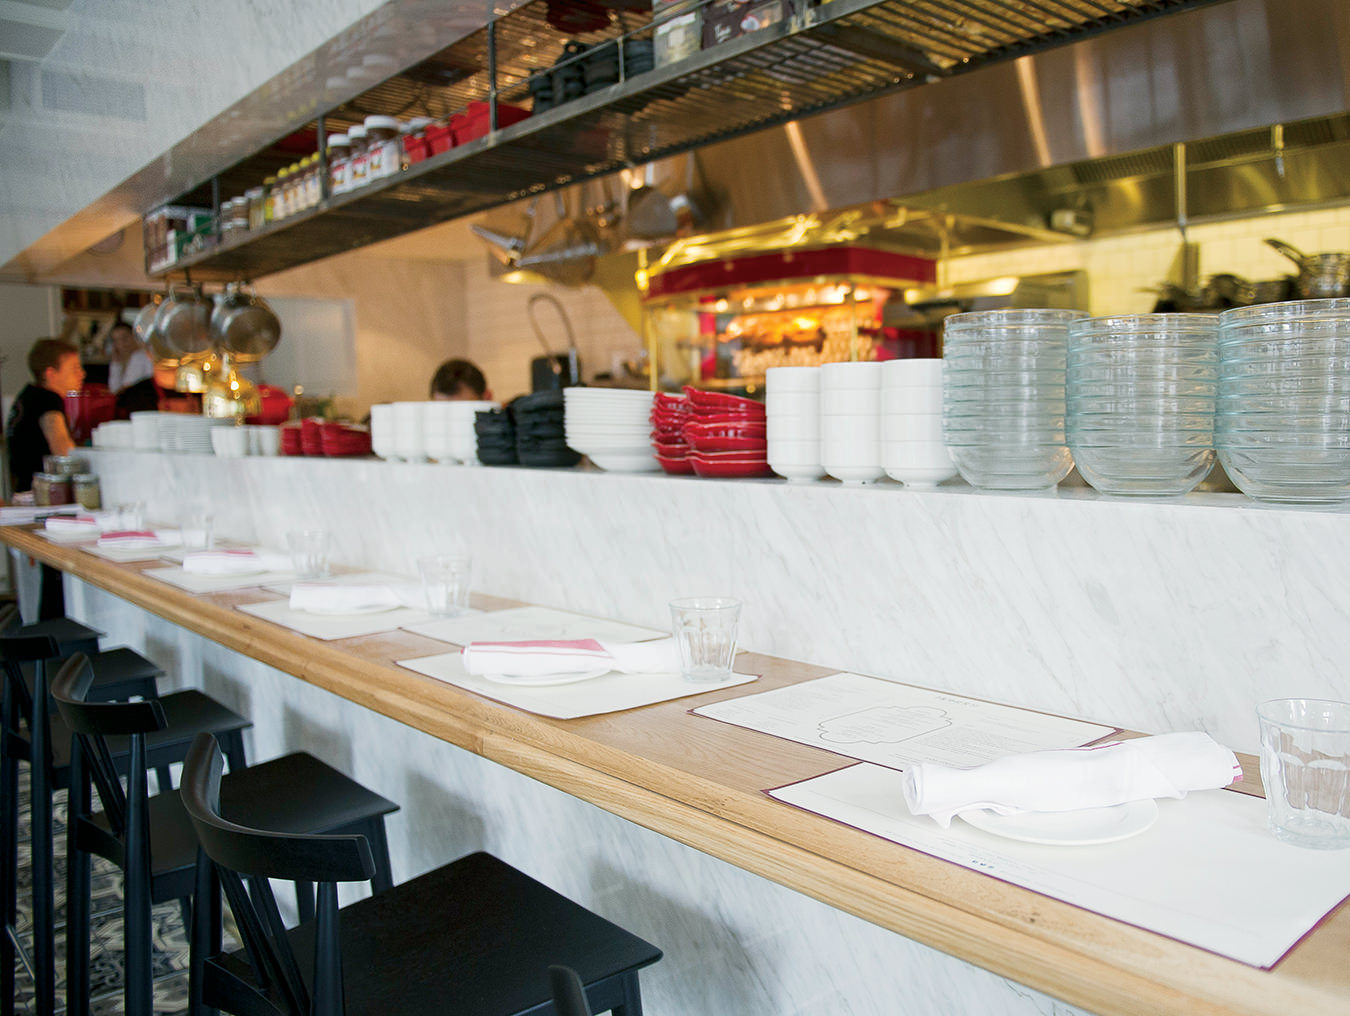 NUVO Magazine: The Homer St. Cafe and Bar